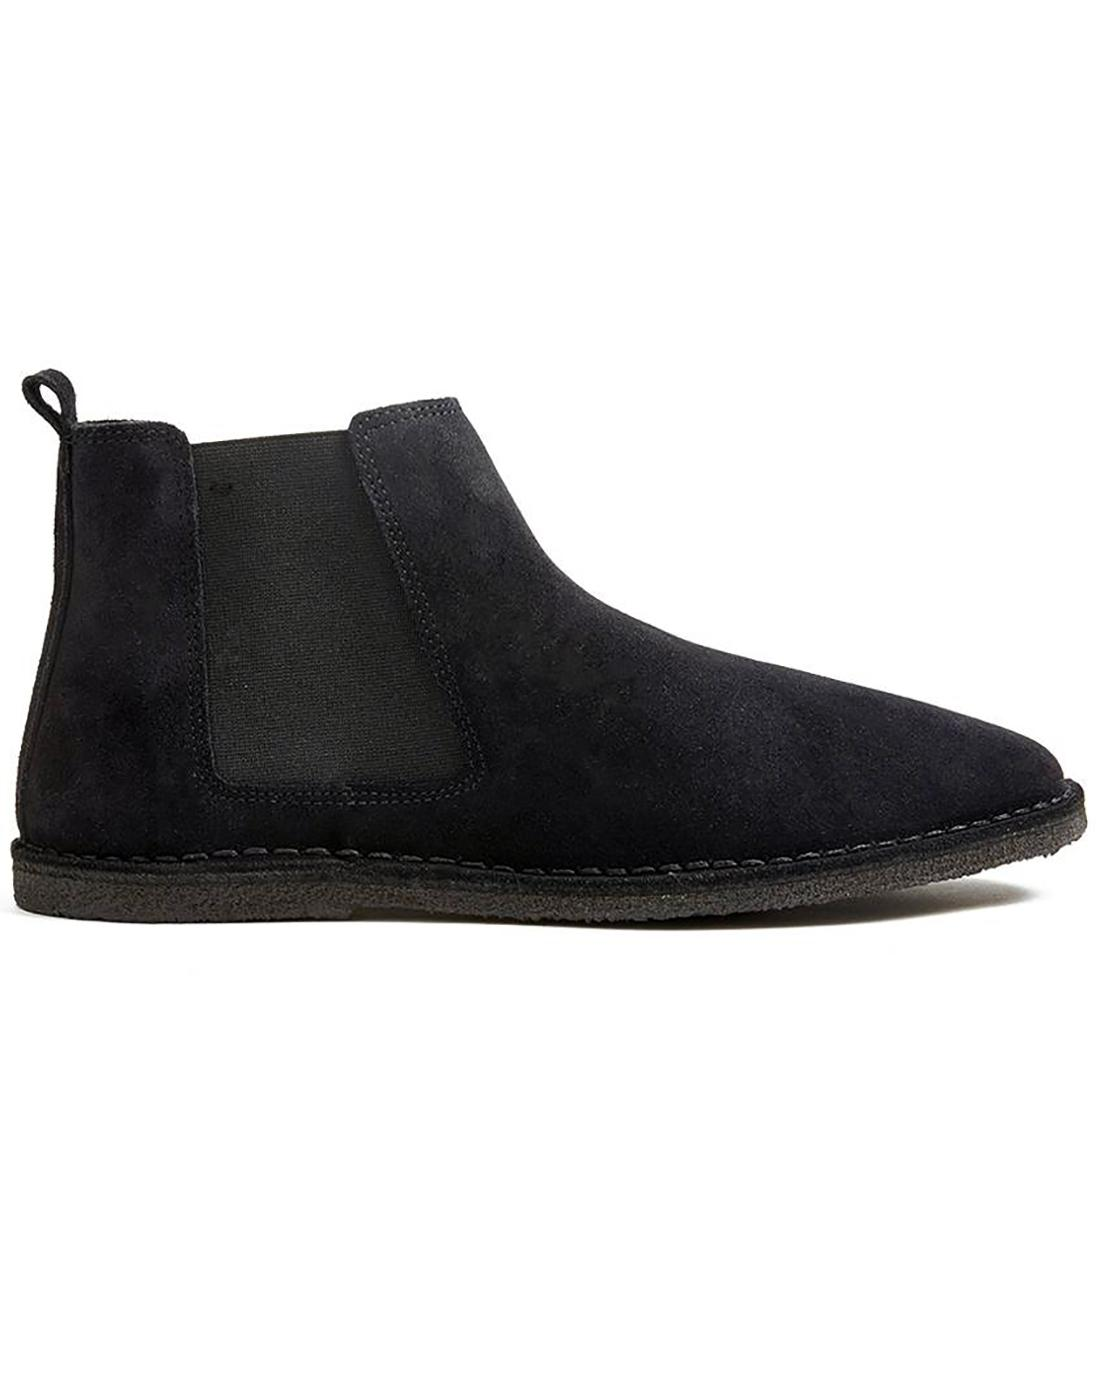 PRETTY GREEN Retro Mod Suede Chelsea Boots Black